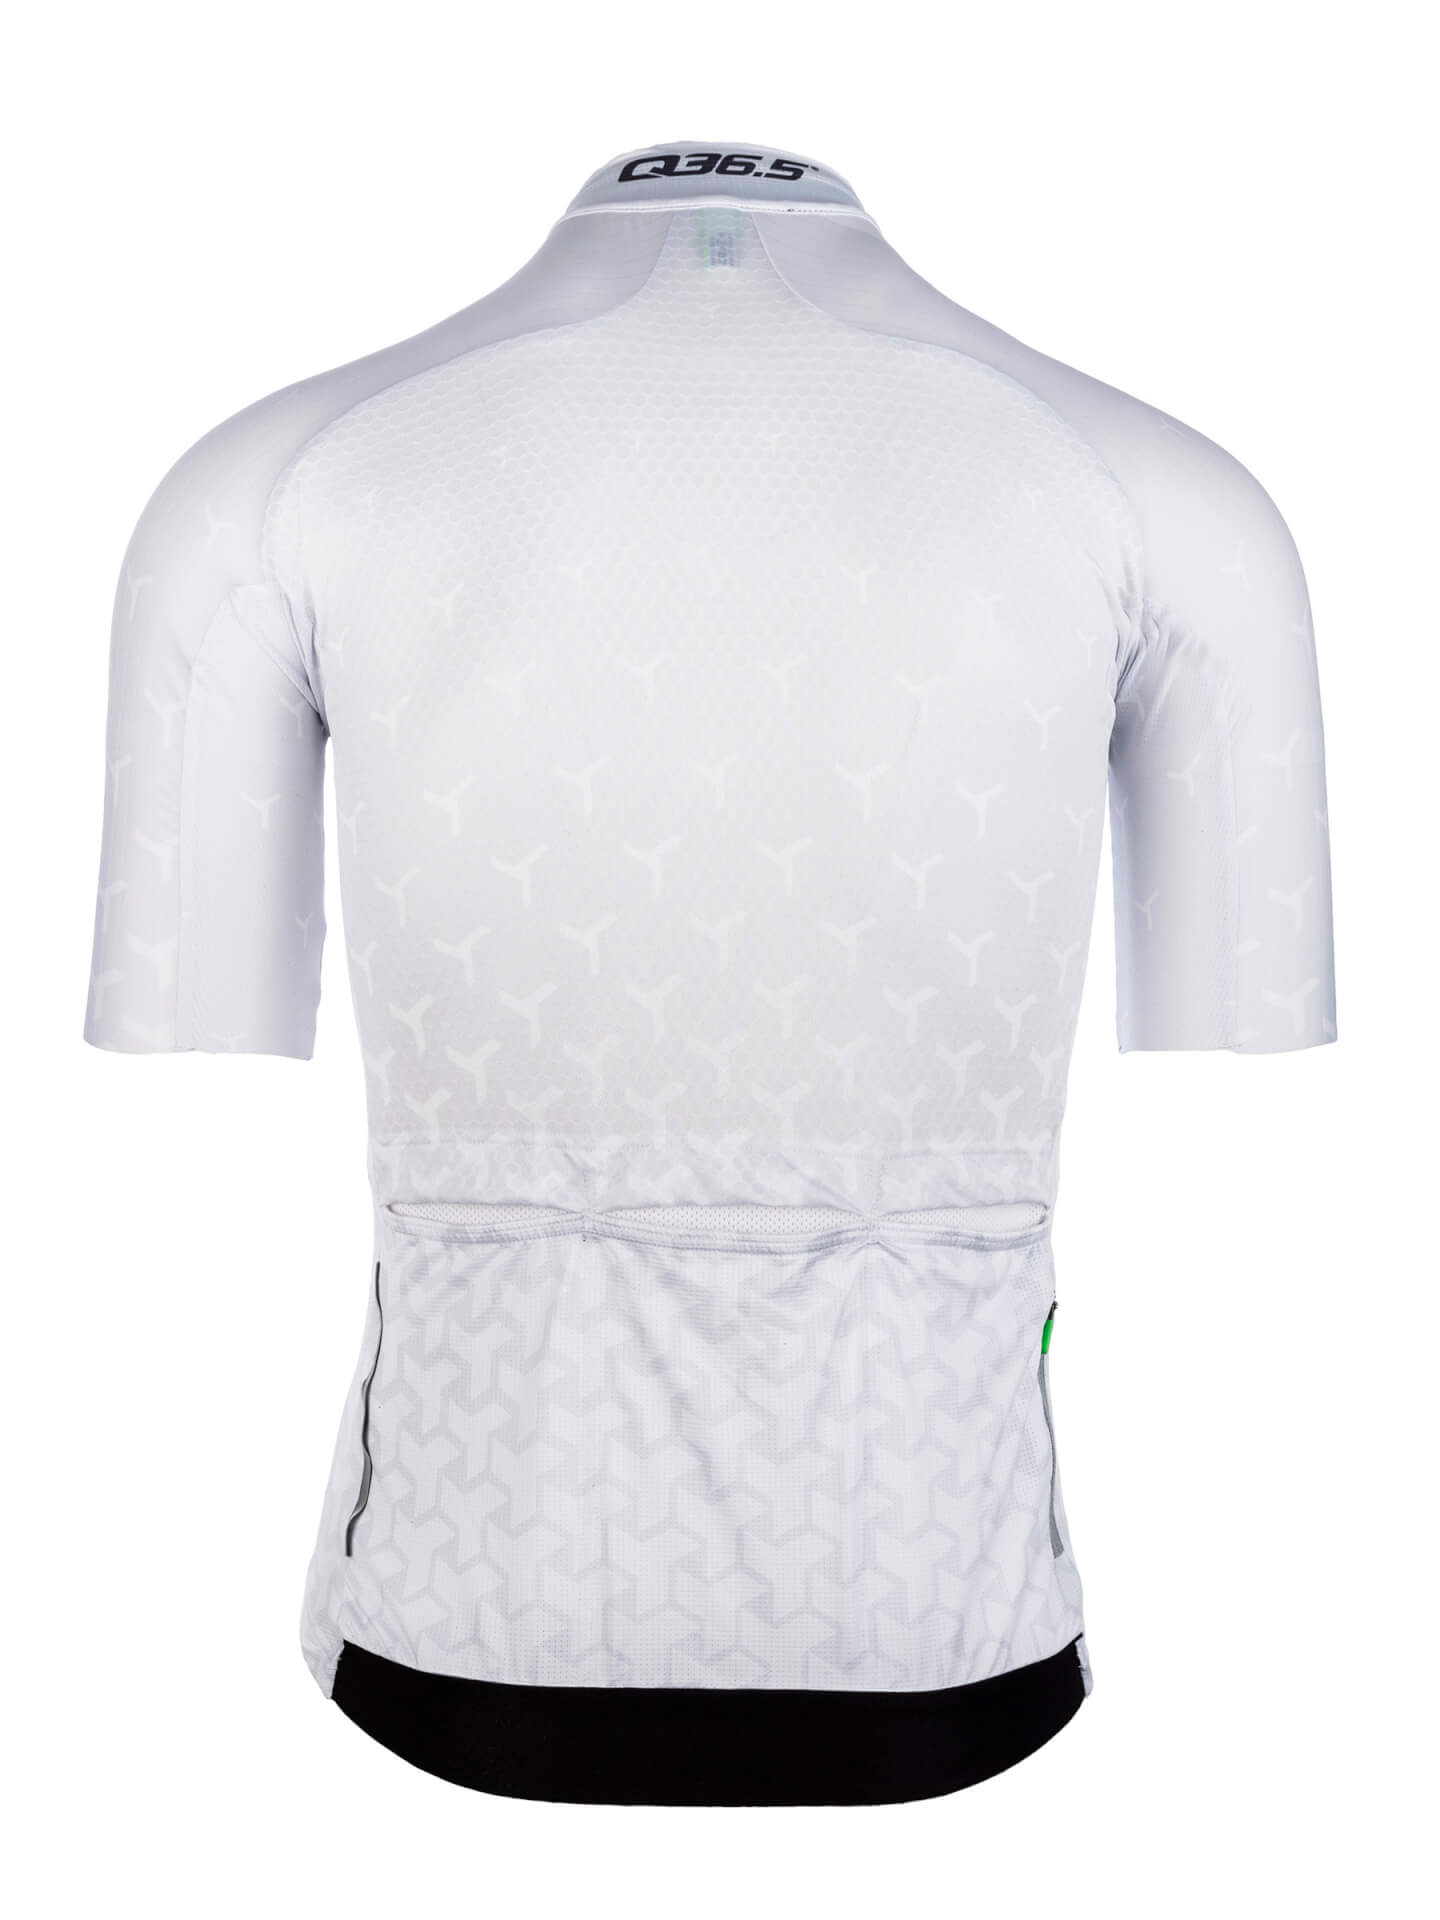 Maillot manches courtes R2 Y blanc